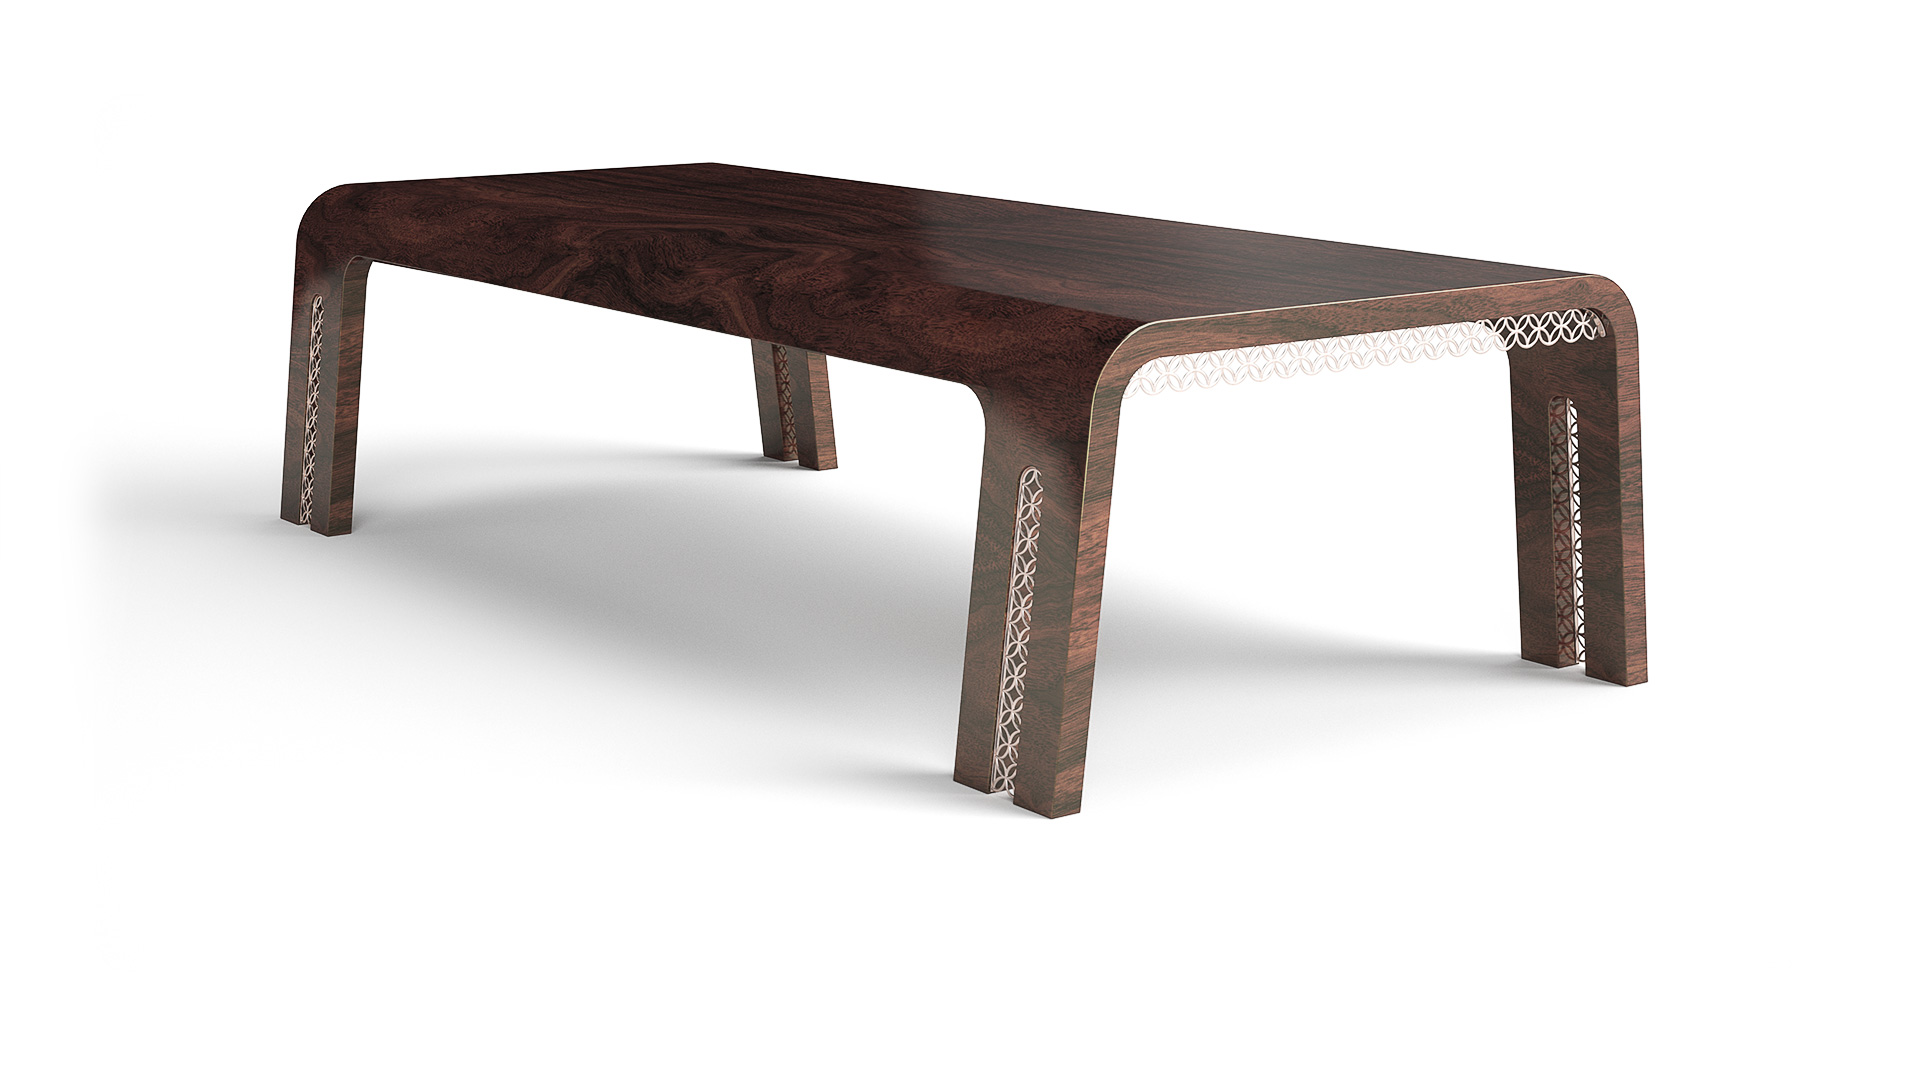 Marrakech Classic dining table big